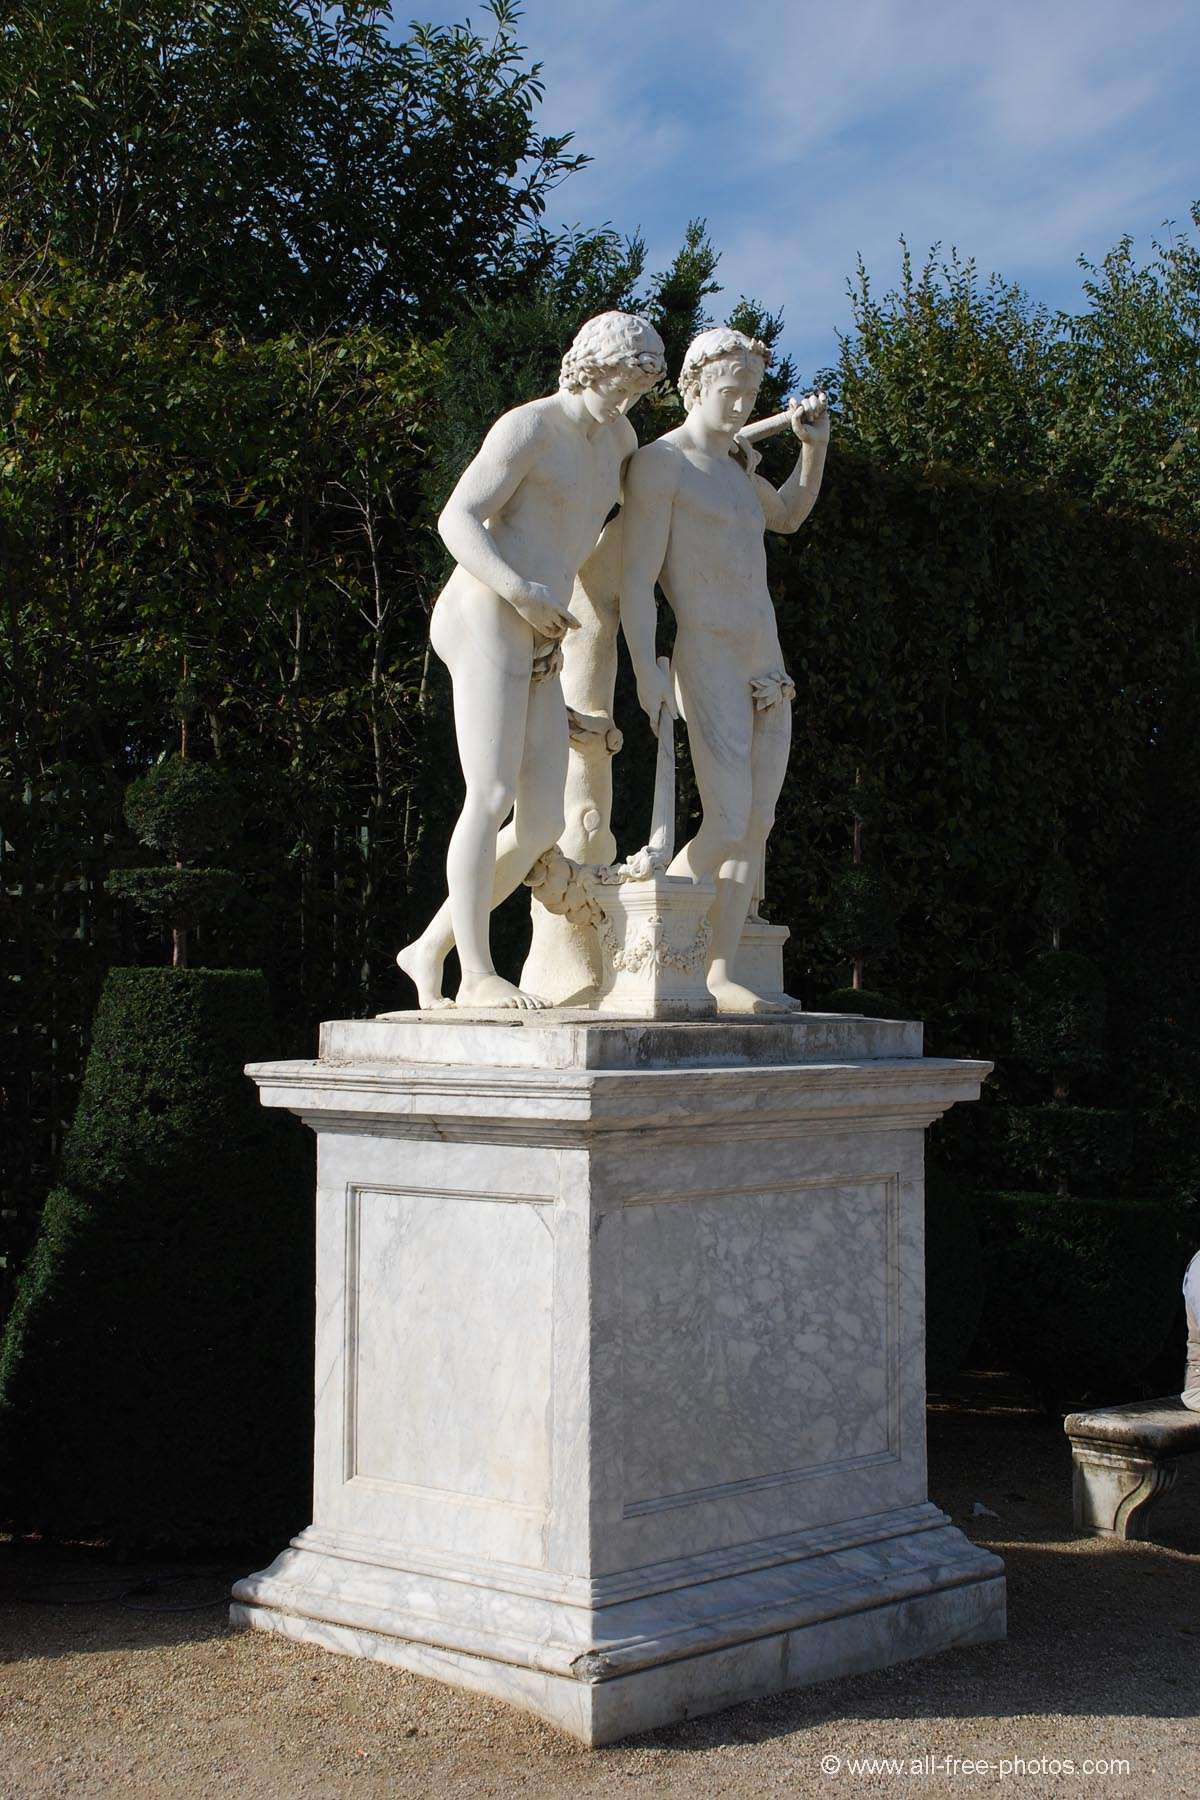 Castor and Pollux - Coysevox (1712)